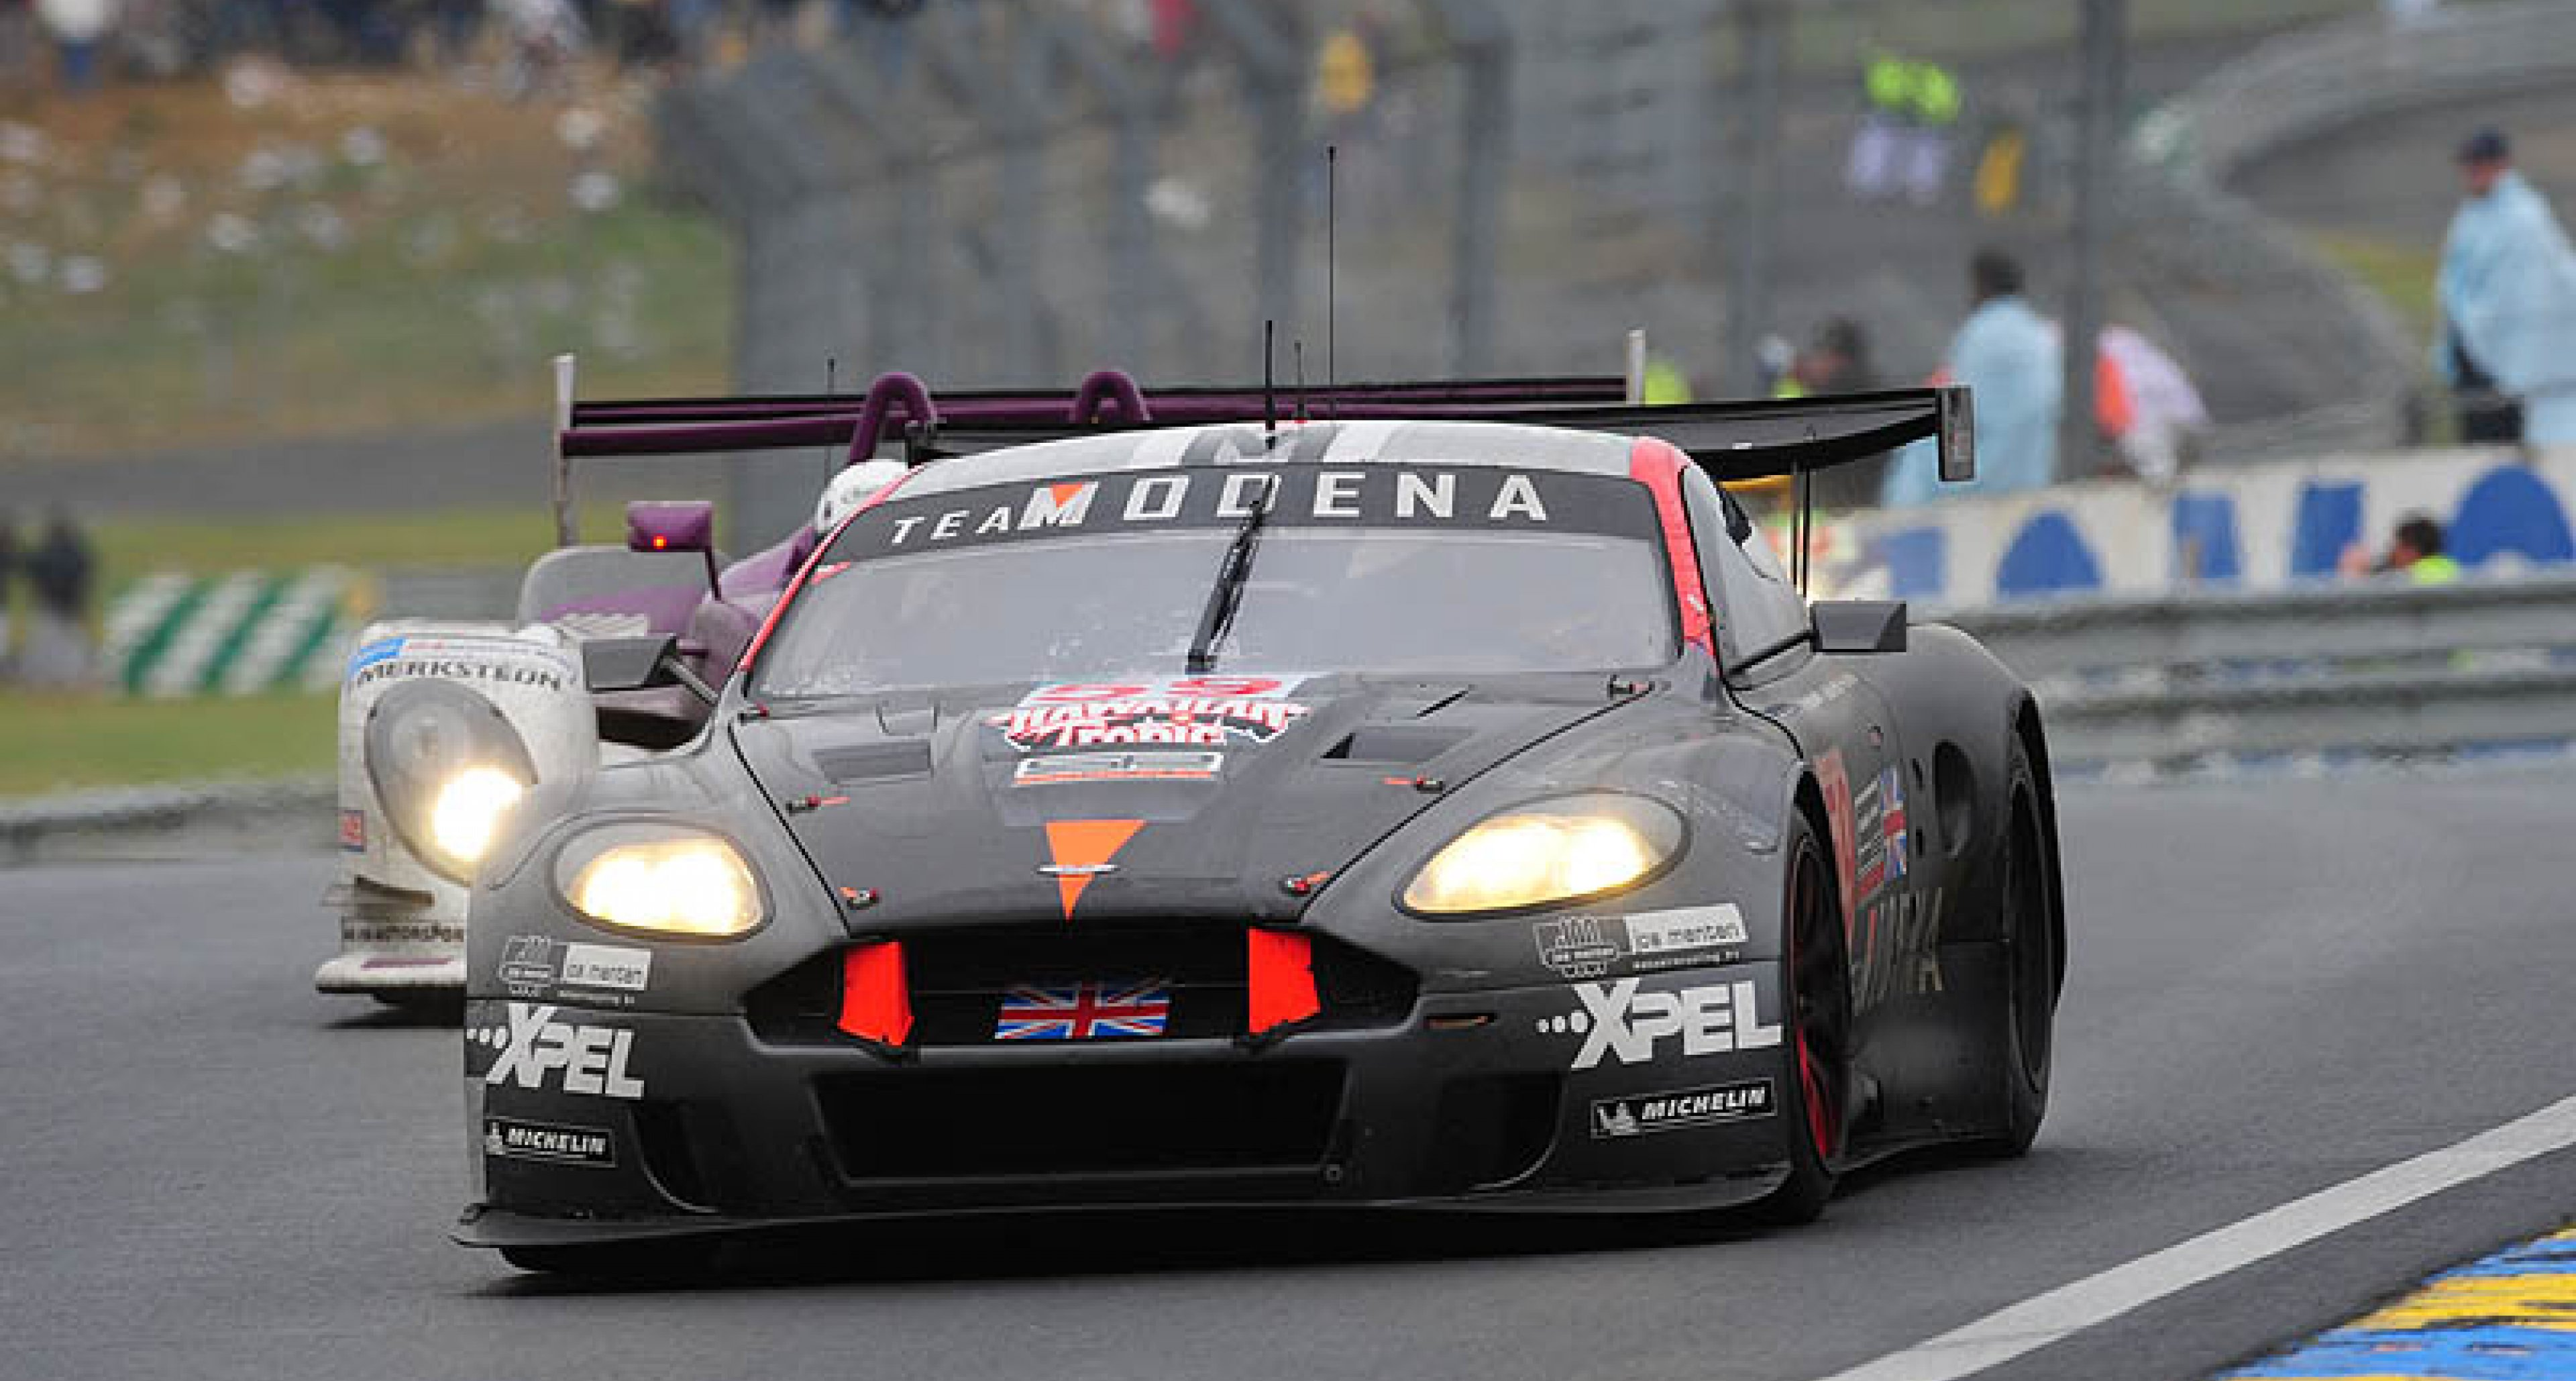 Aston Martin at Le Mans 2008: close-run, but another class victory